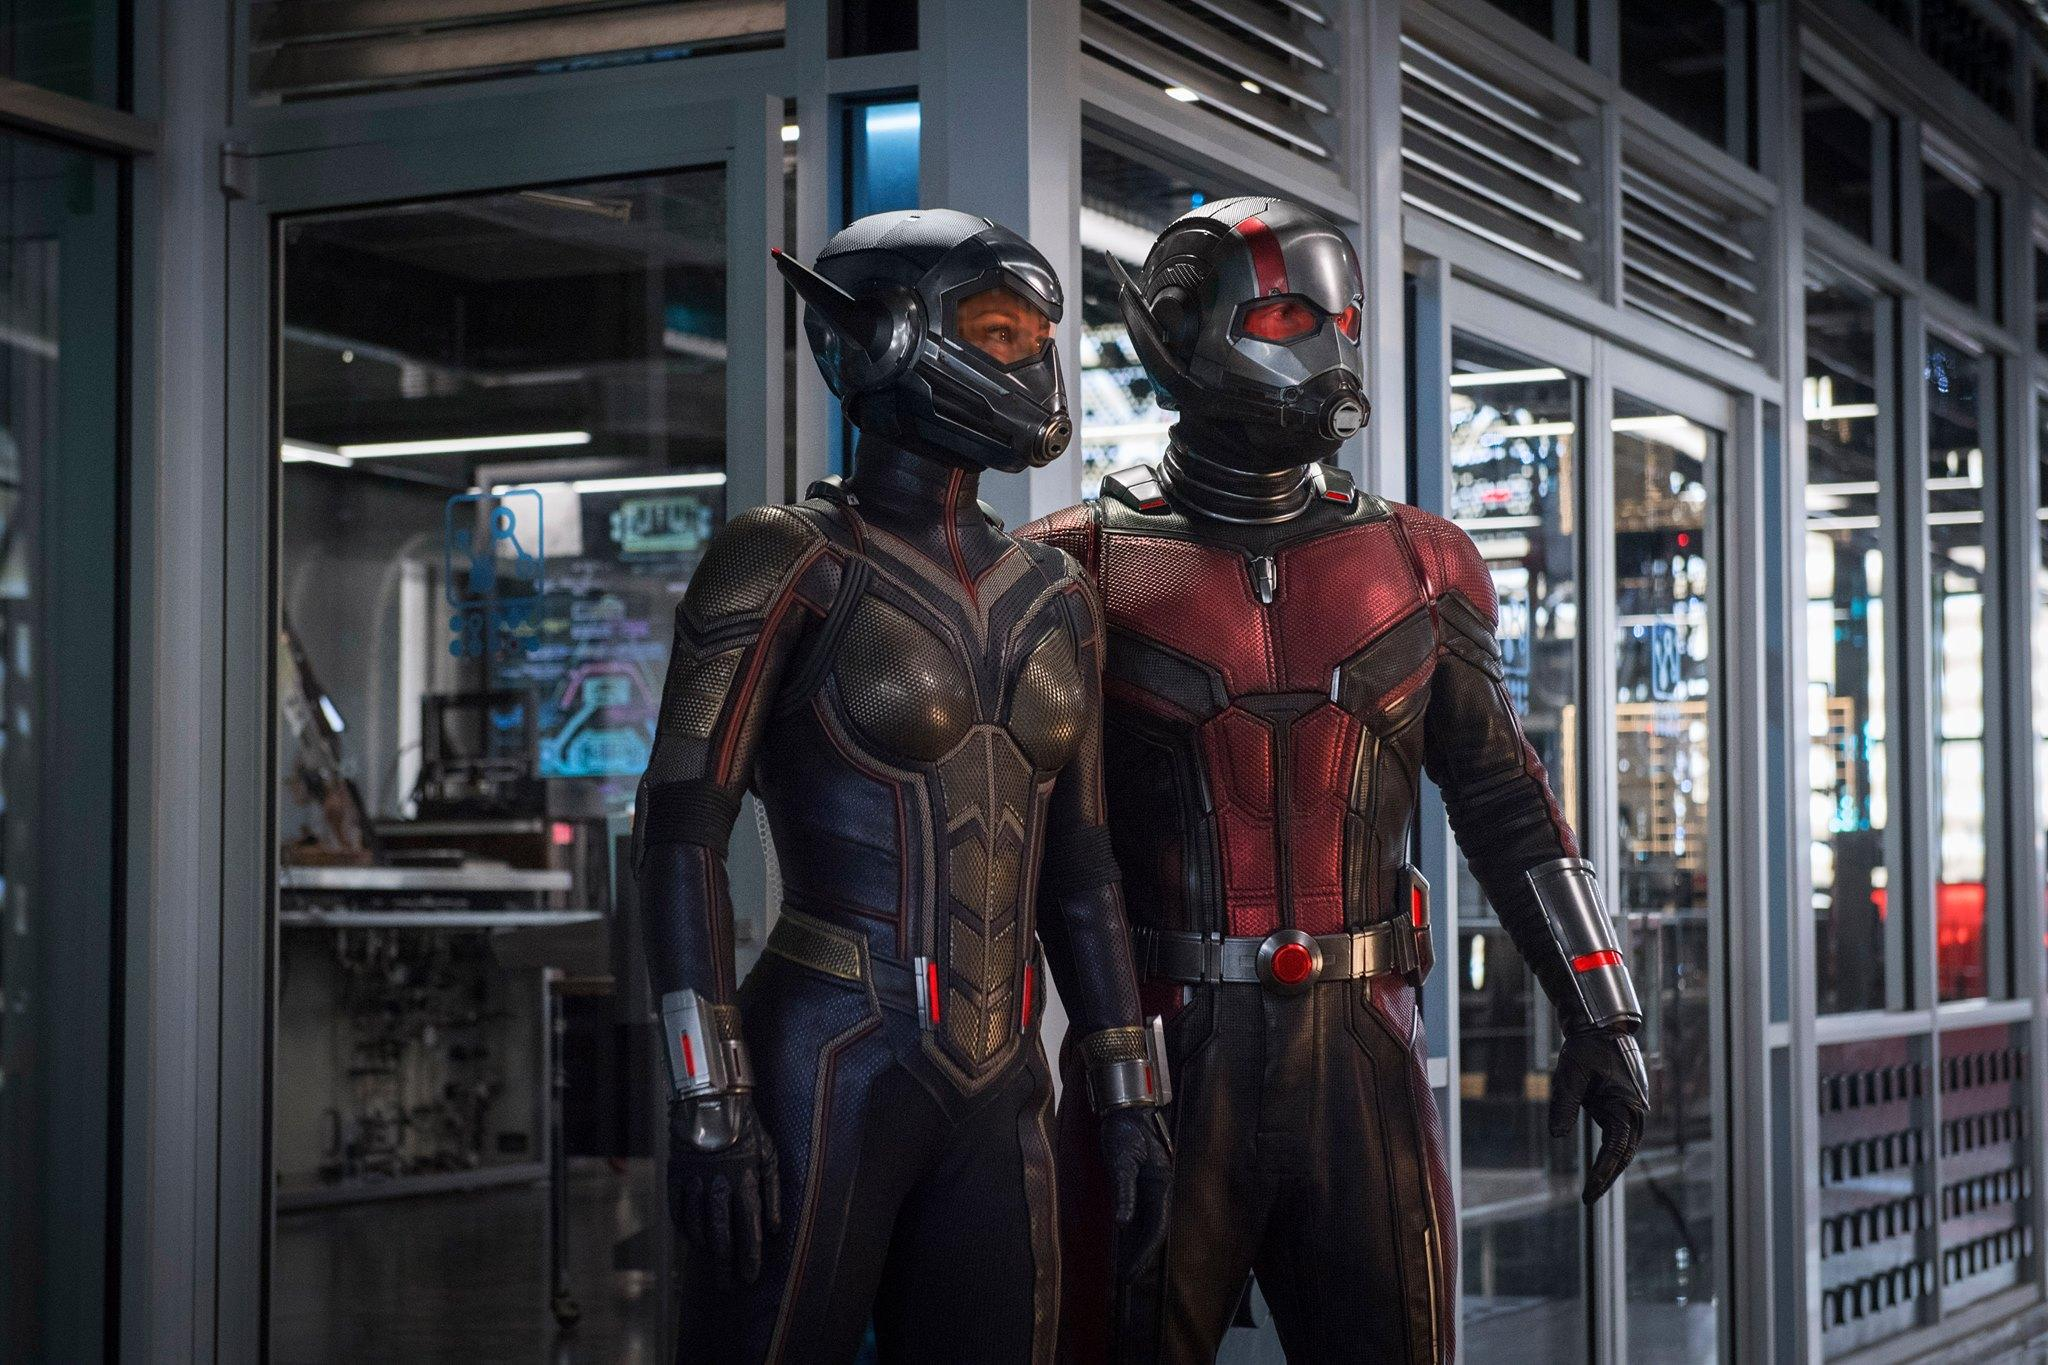 Ant-Man and the Wasp preorder tickets